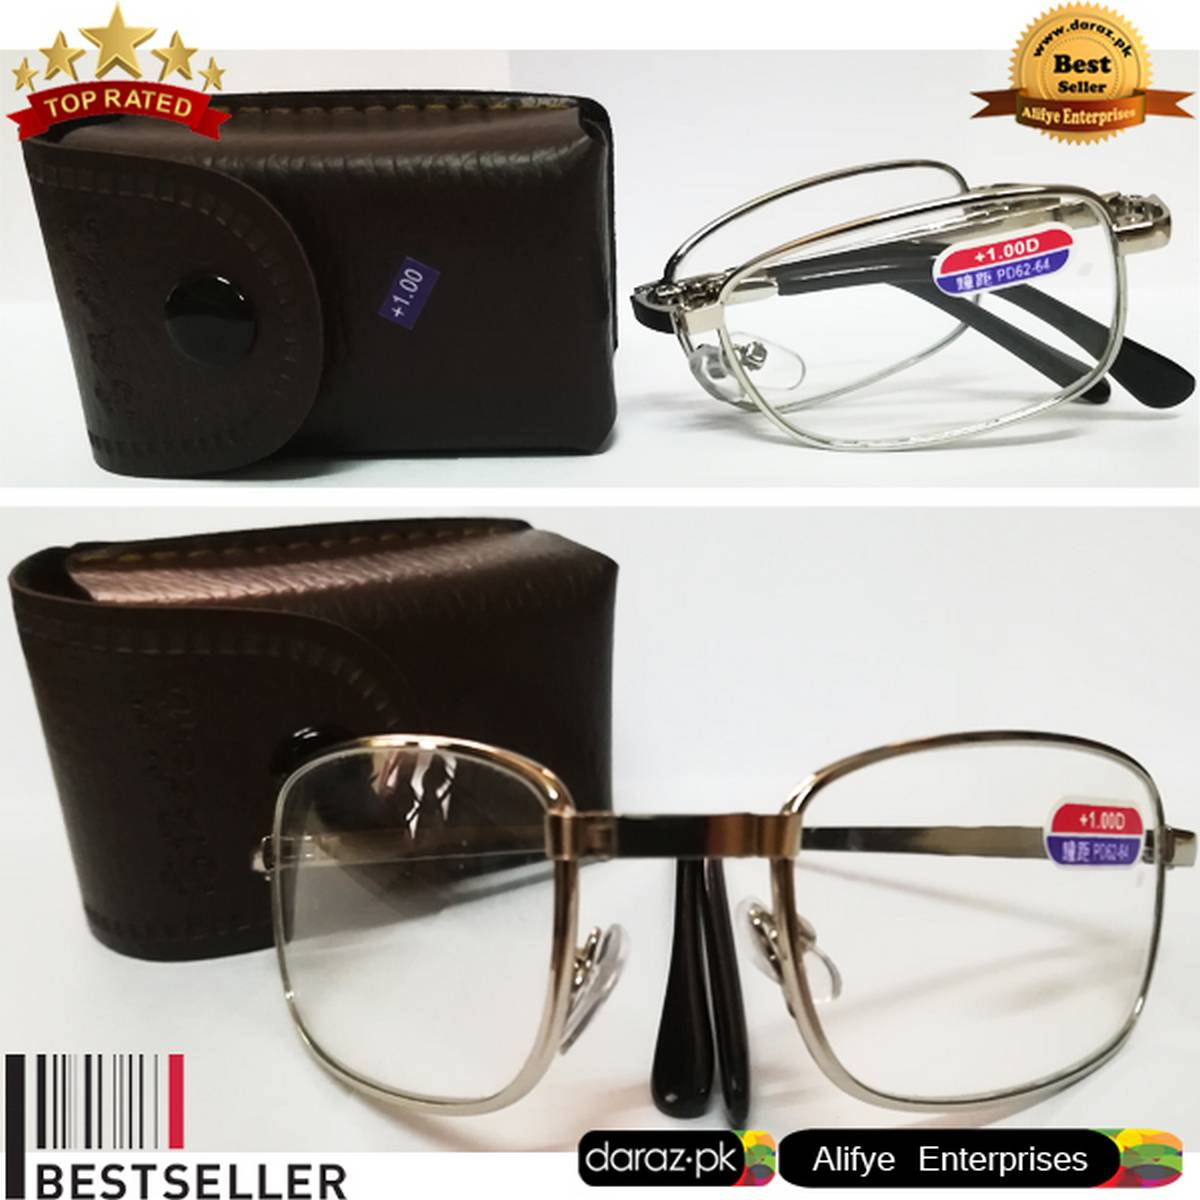 Imported Foldable Optical Reading Glasses +1.00 Prescription Eyeglass Metal Men & Women Ray Computer Working Folding Reading Glasses with Case